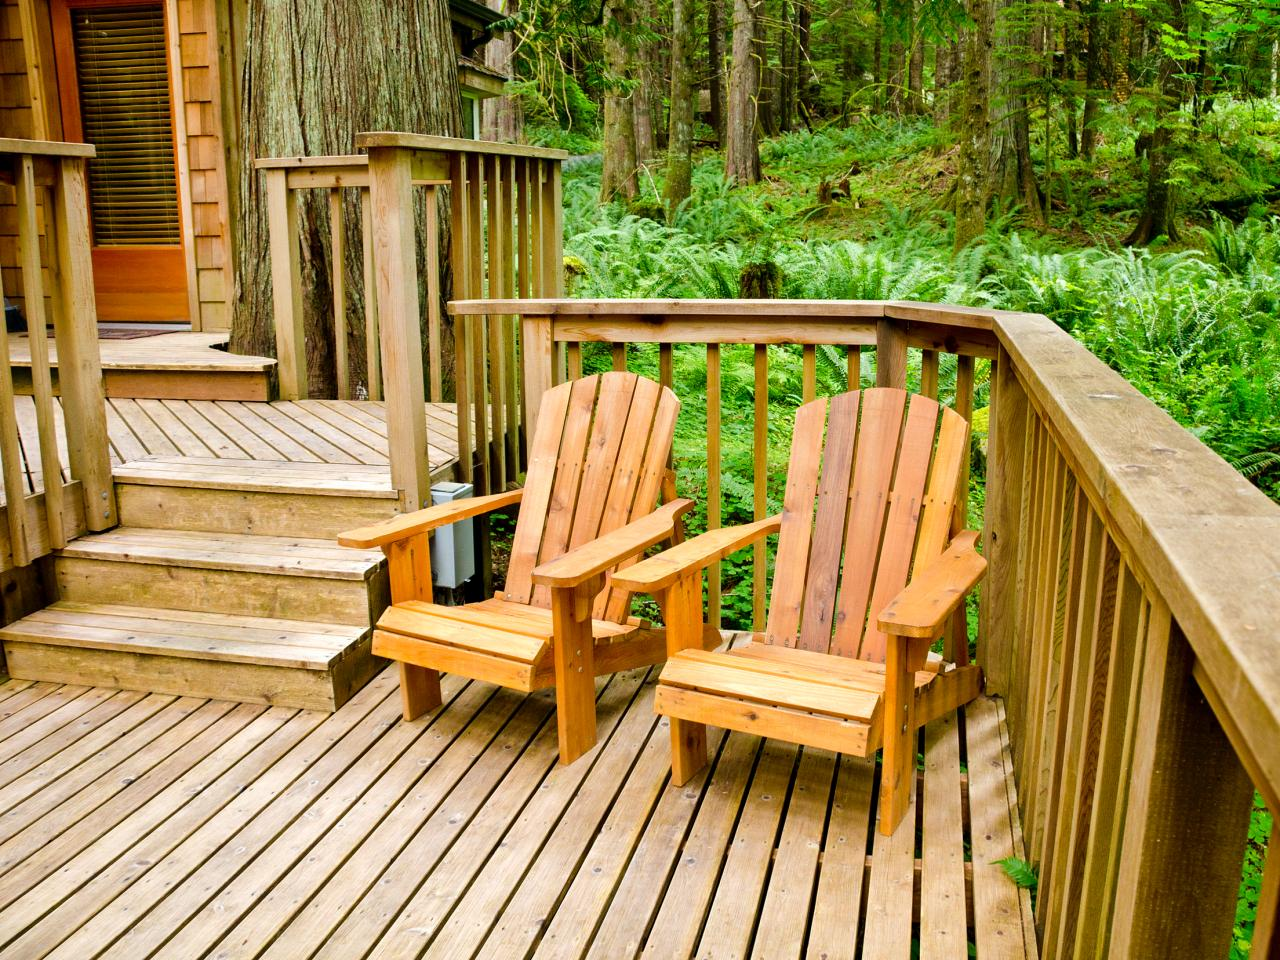 10 tips for building a deck diy deck building patio for Things to consider when building a deck